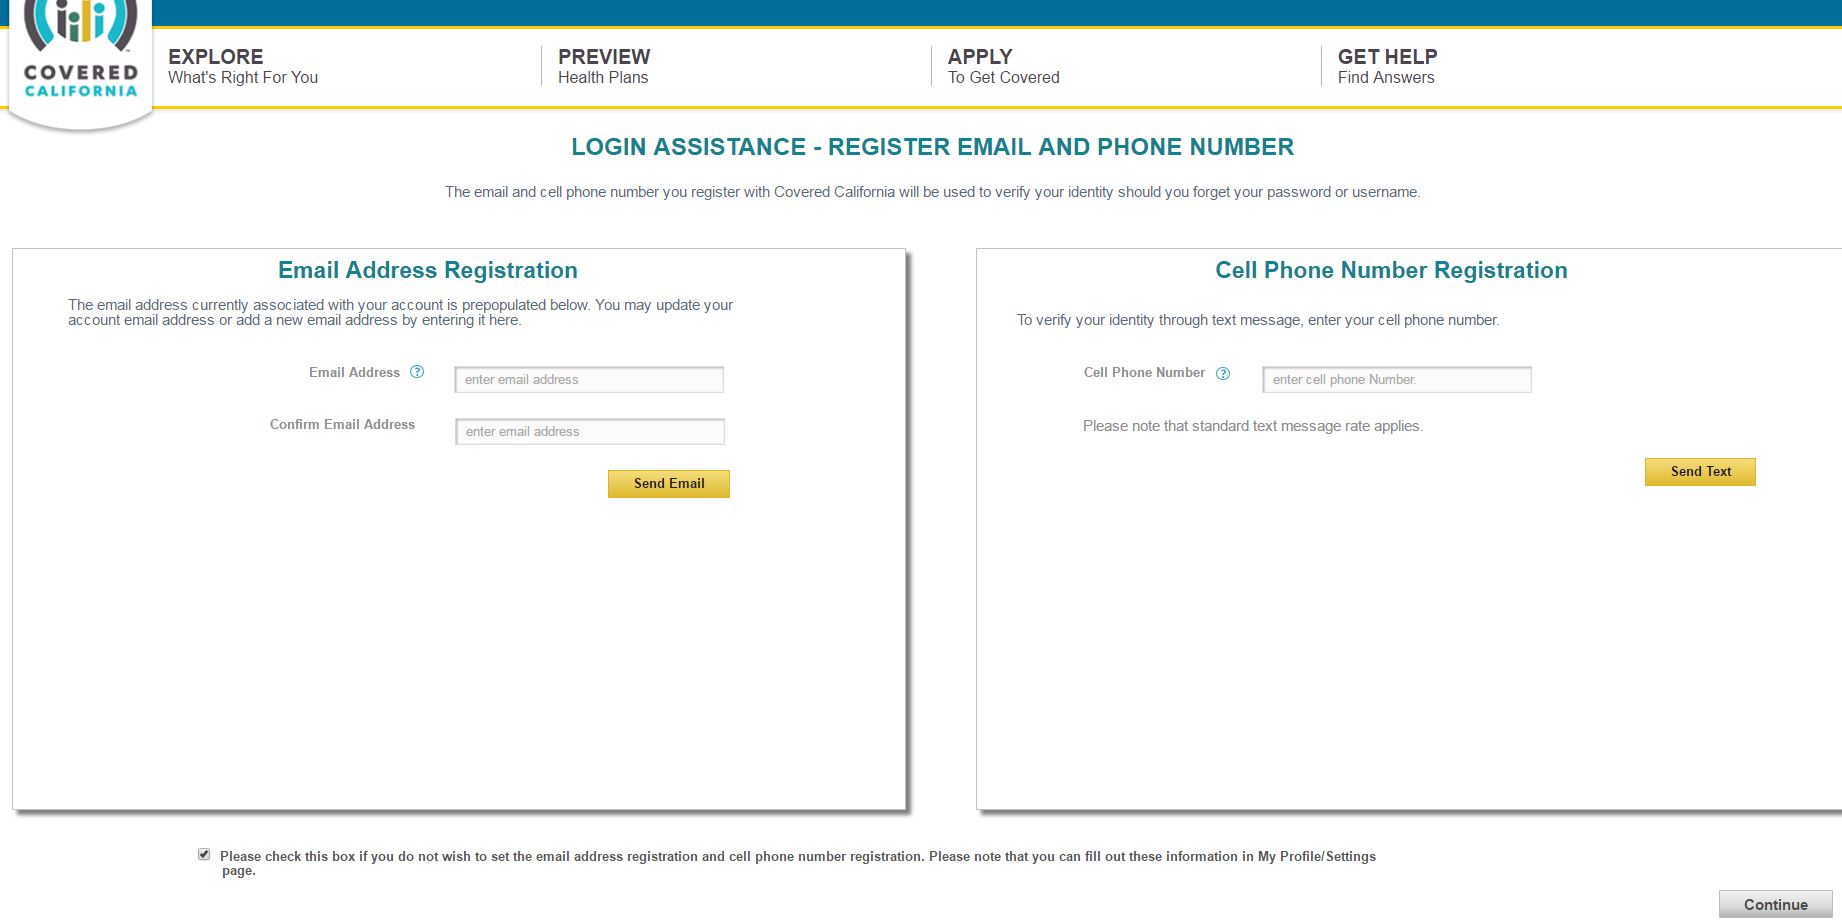 login assistance page for covered california application